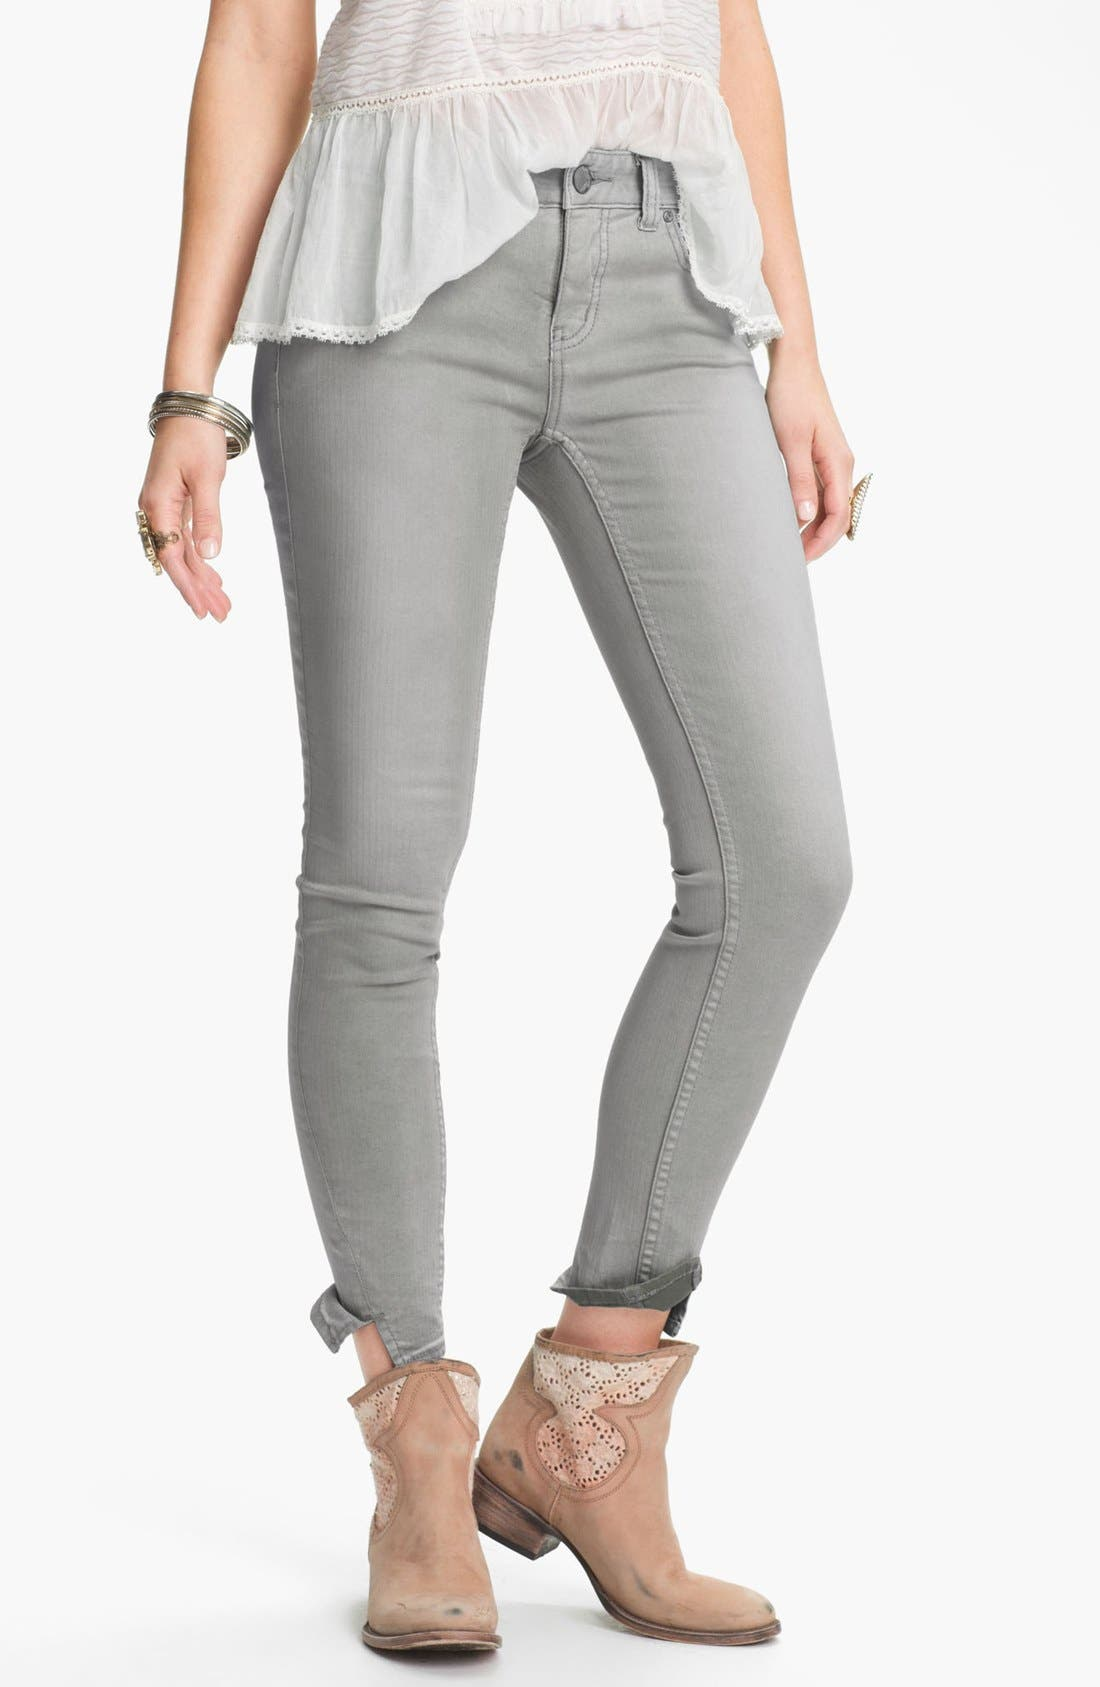 Alternate Image 1 Selected - Free People Crop Stretch Denim Skinny Jeans (Desi Wash)